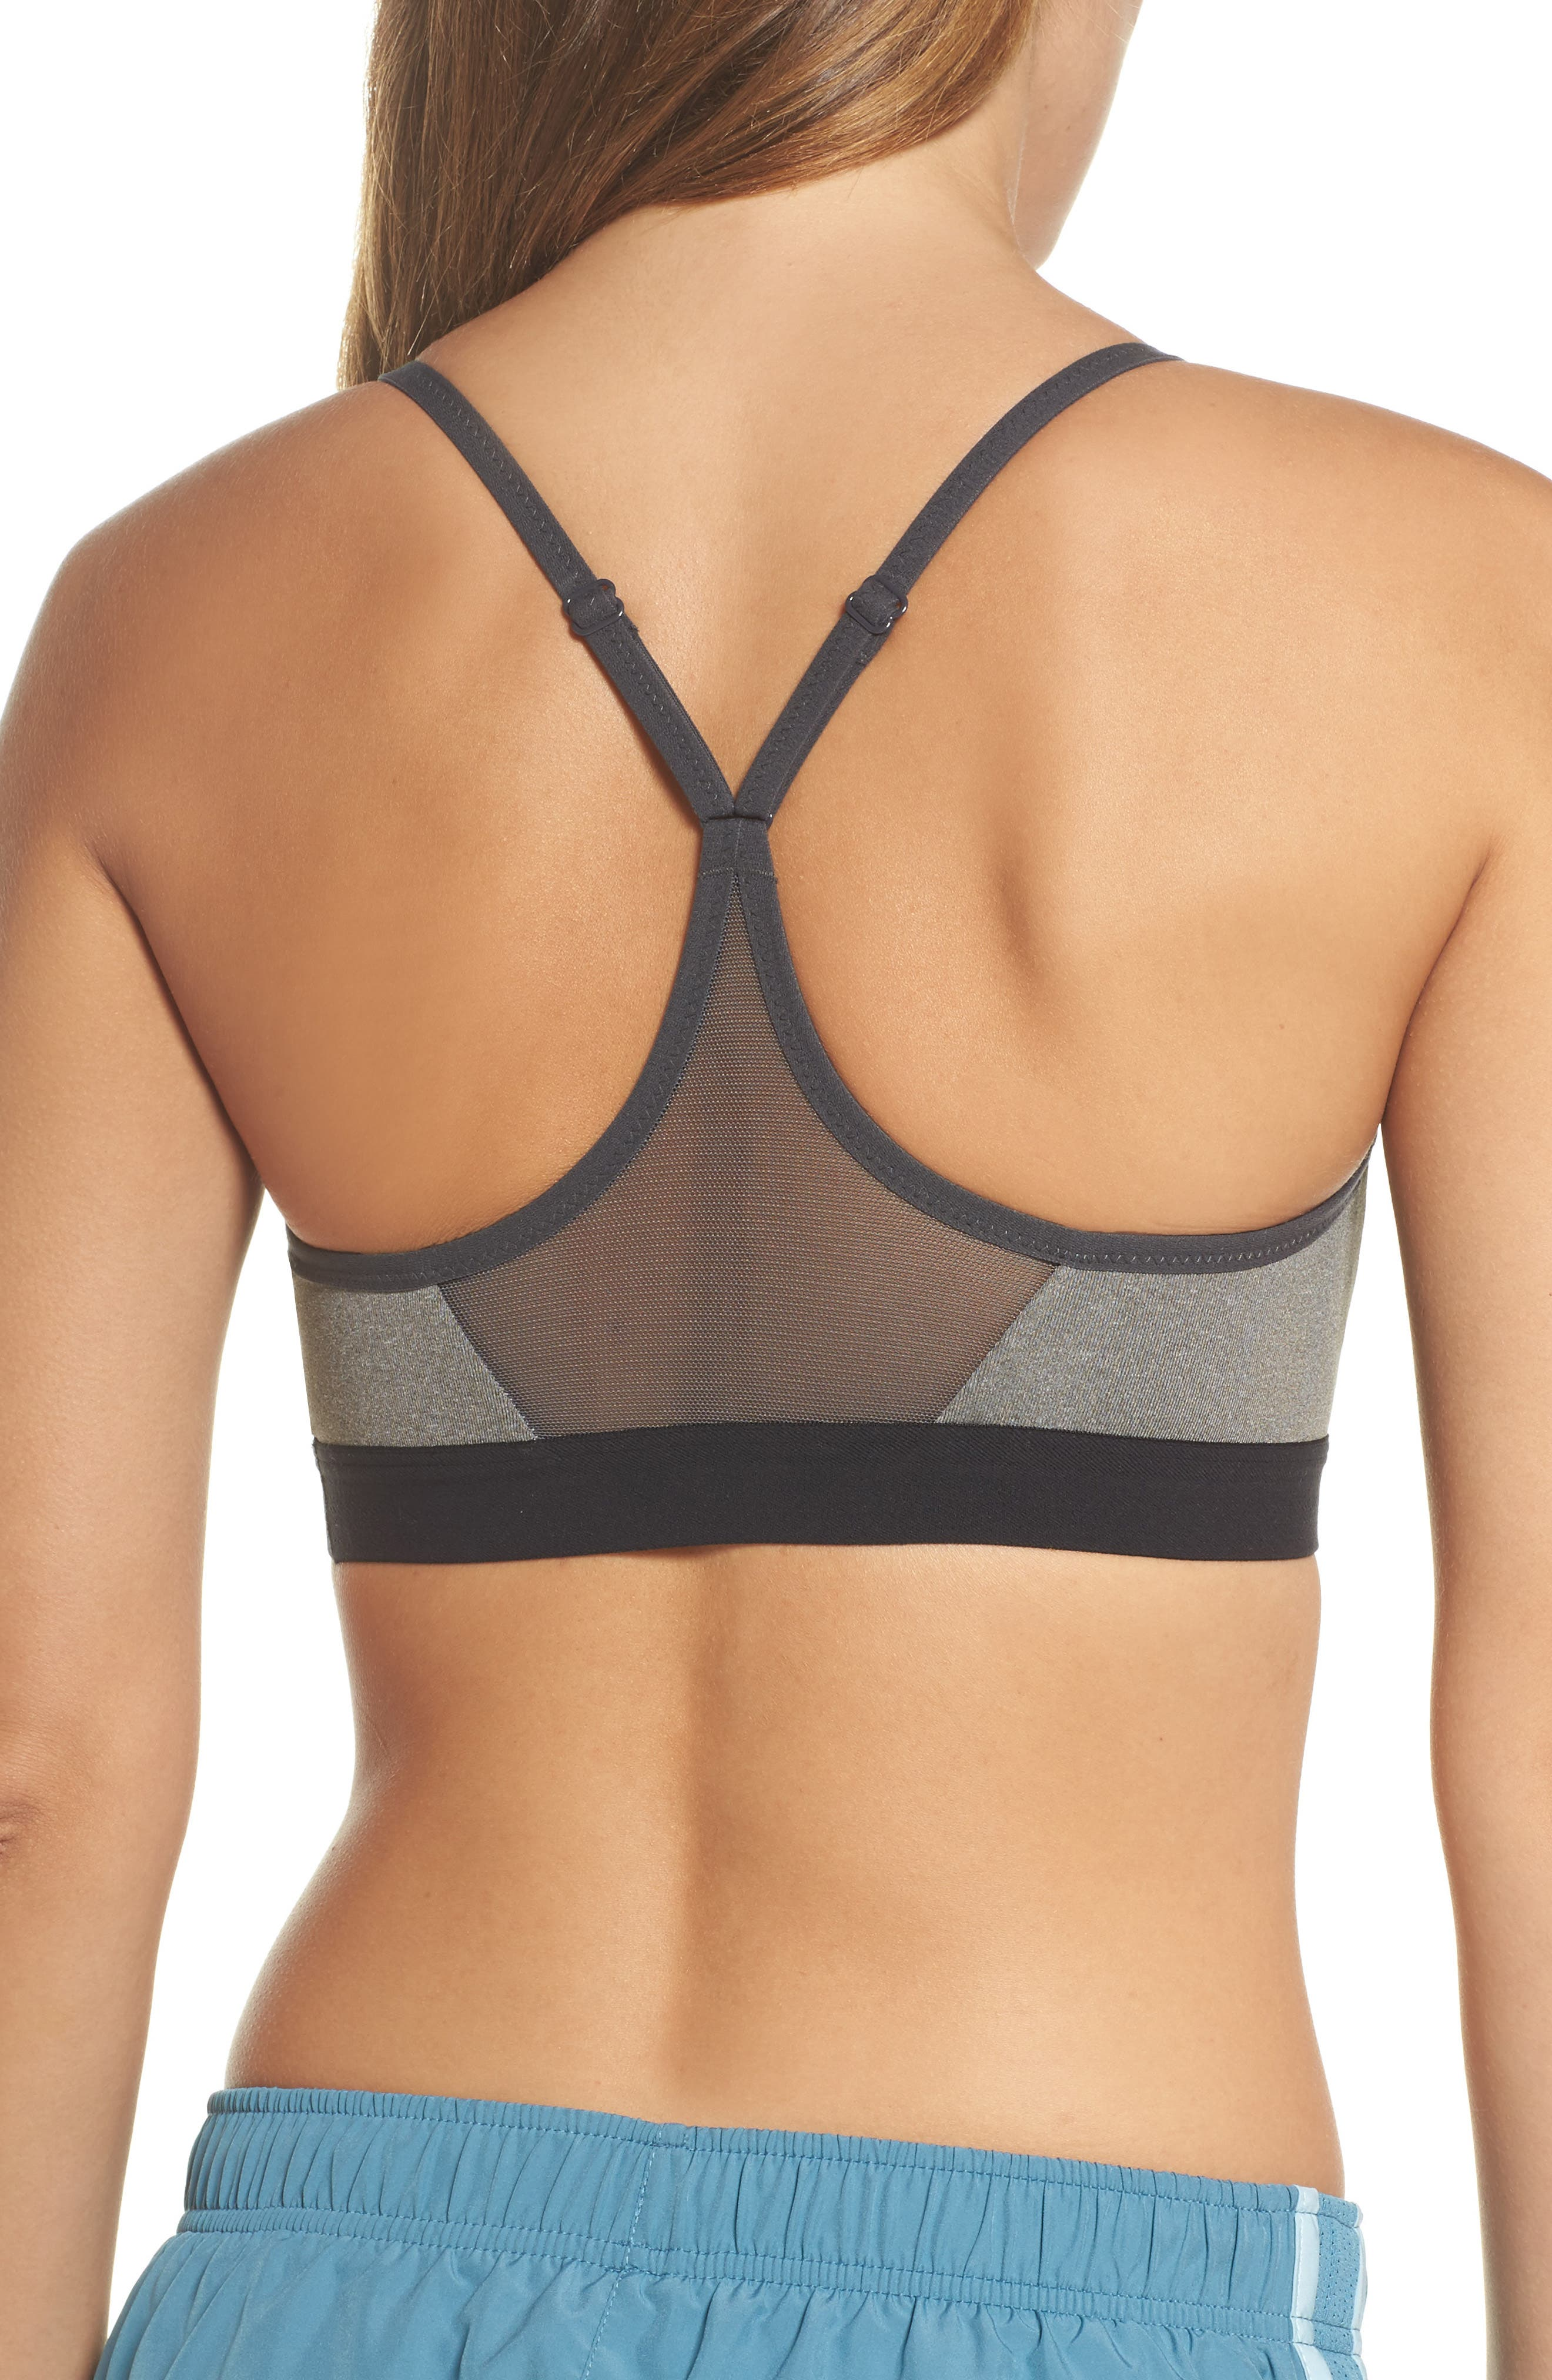 Indy Sports Bra,                             Alternate thumbnail 2, color,                             Carbon Heather/ Anthracite